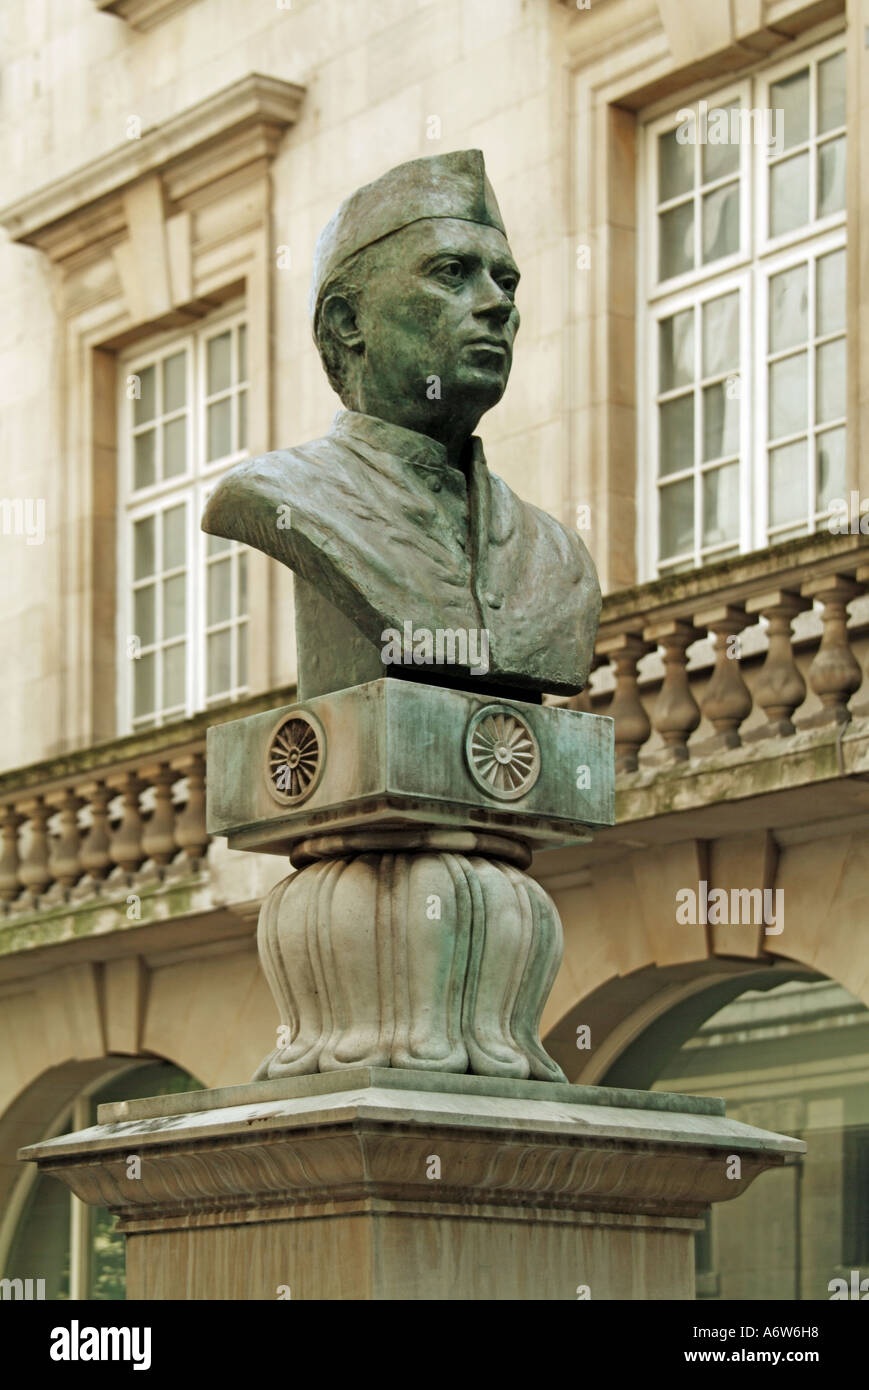 London bust of Jawaharlal Nehru prime minister of India 1947 to 1964 - Stock Image